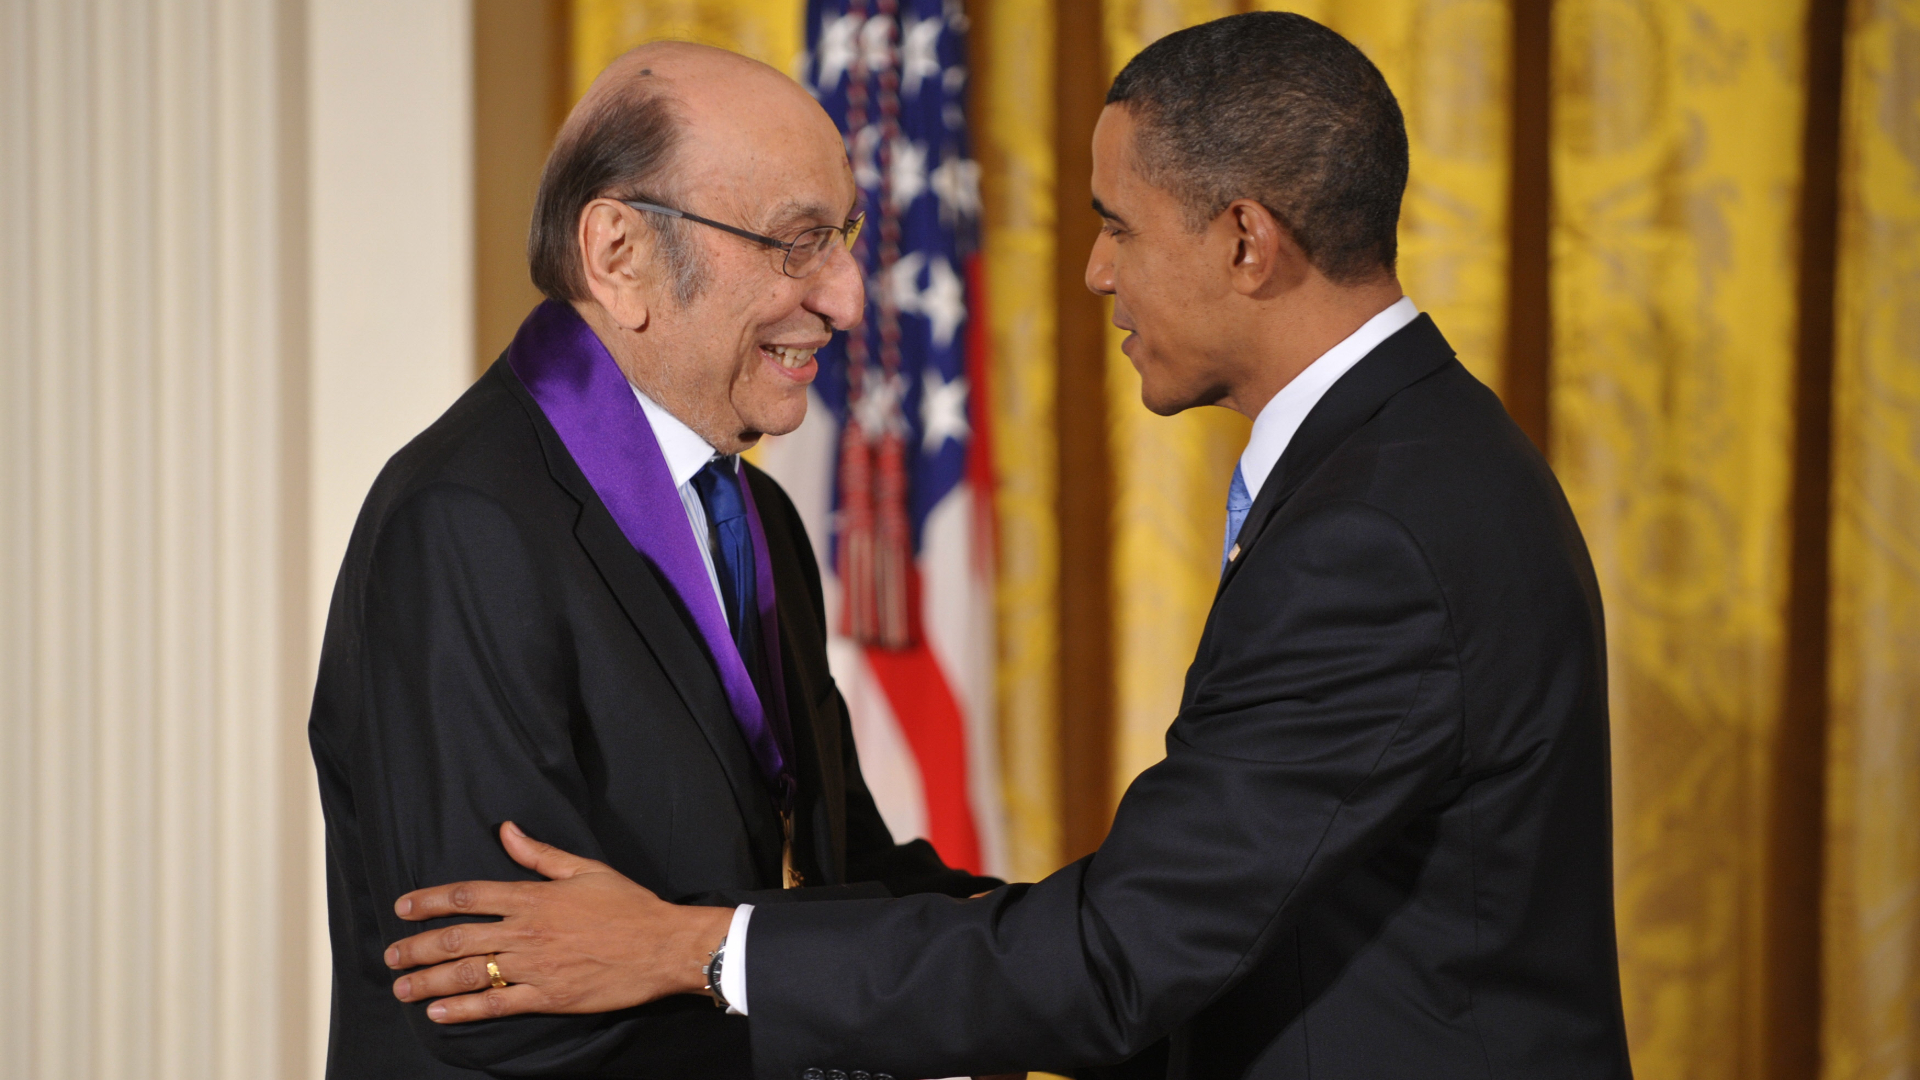 President Barack Obama shakes hands with graphic designer Milton Glaser after presenting him with the 2009 National Medal of Arts during a ceremony at the White House on Feb. 25, 2010. (Mandel Ngan / AFP / Getty Images)